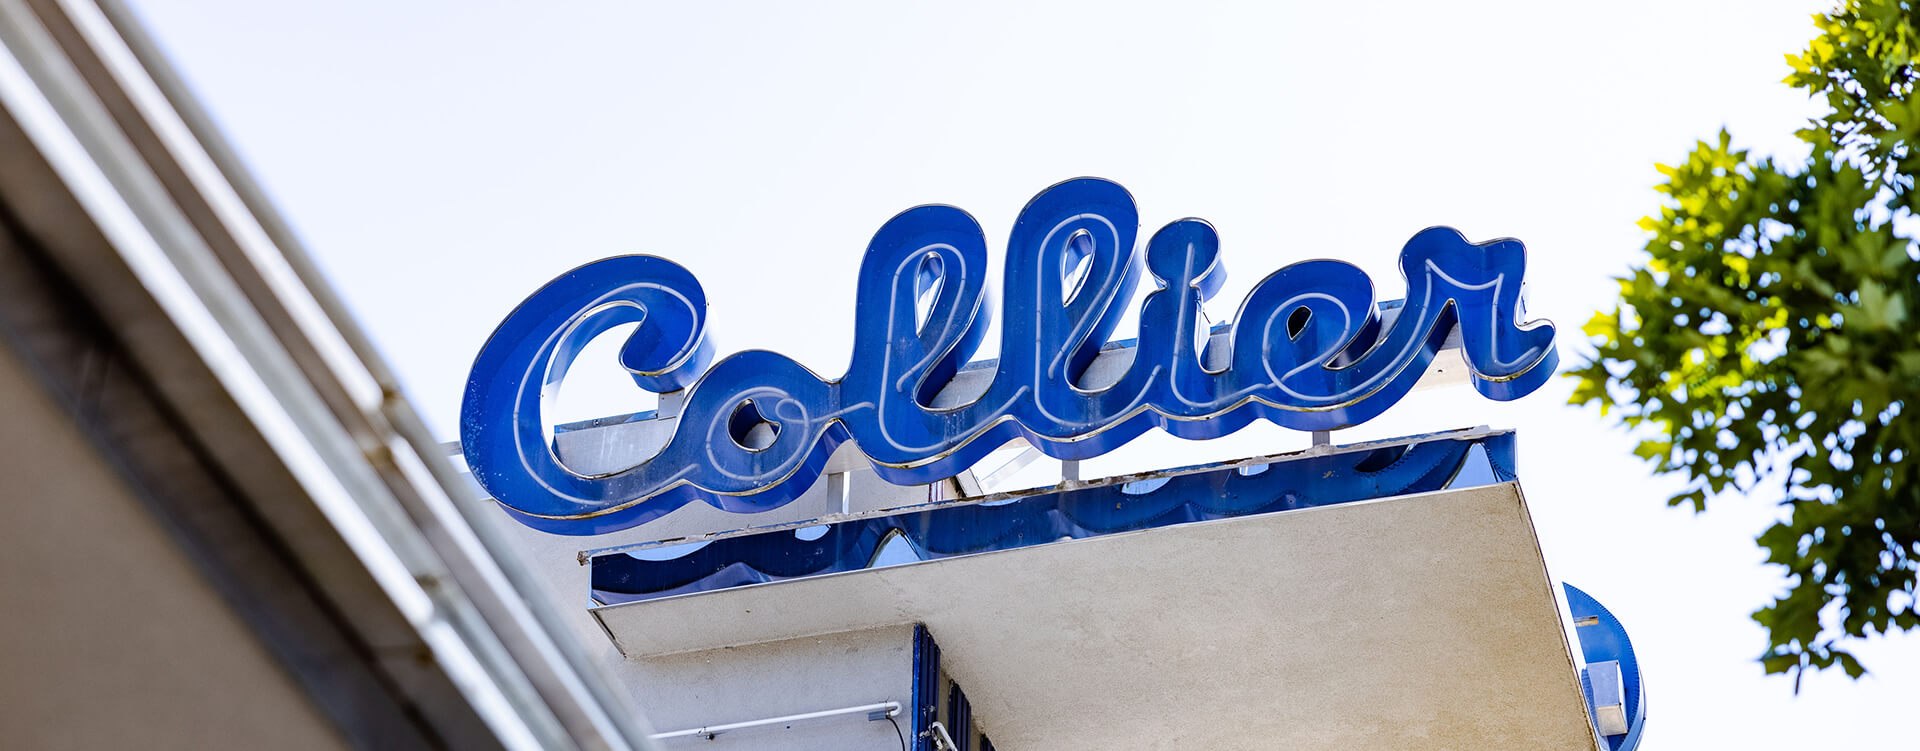 Photograph of the Collier Drug Stores logo signage